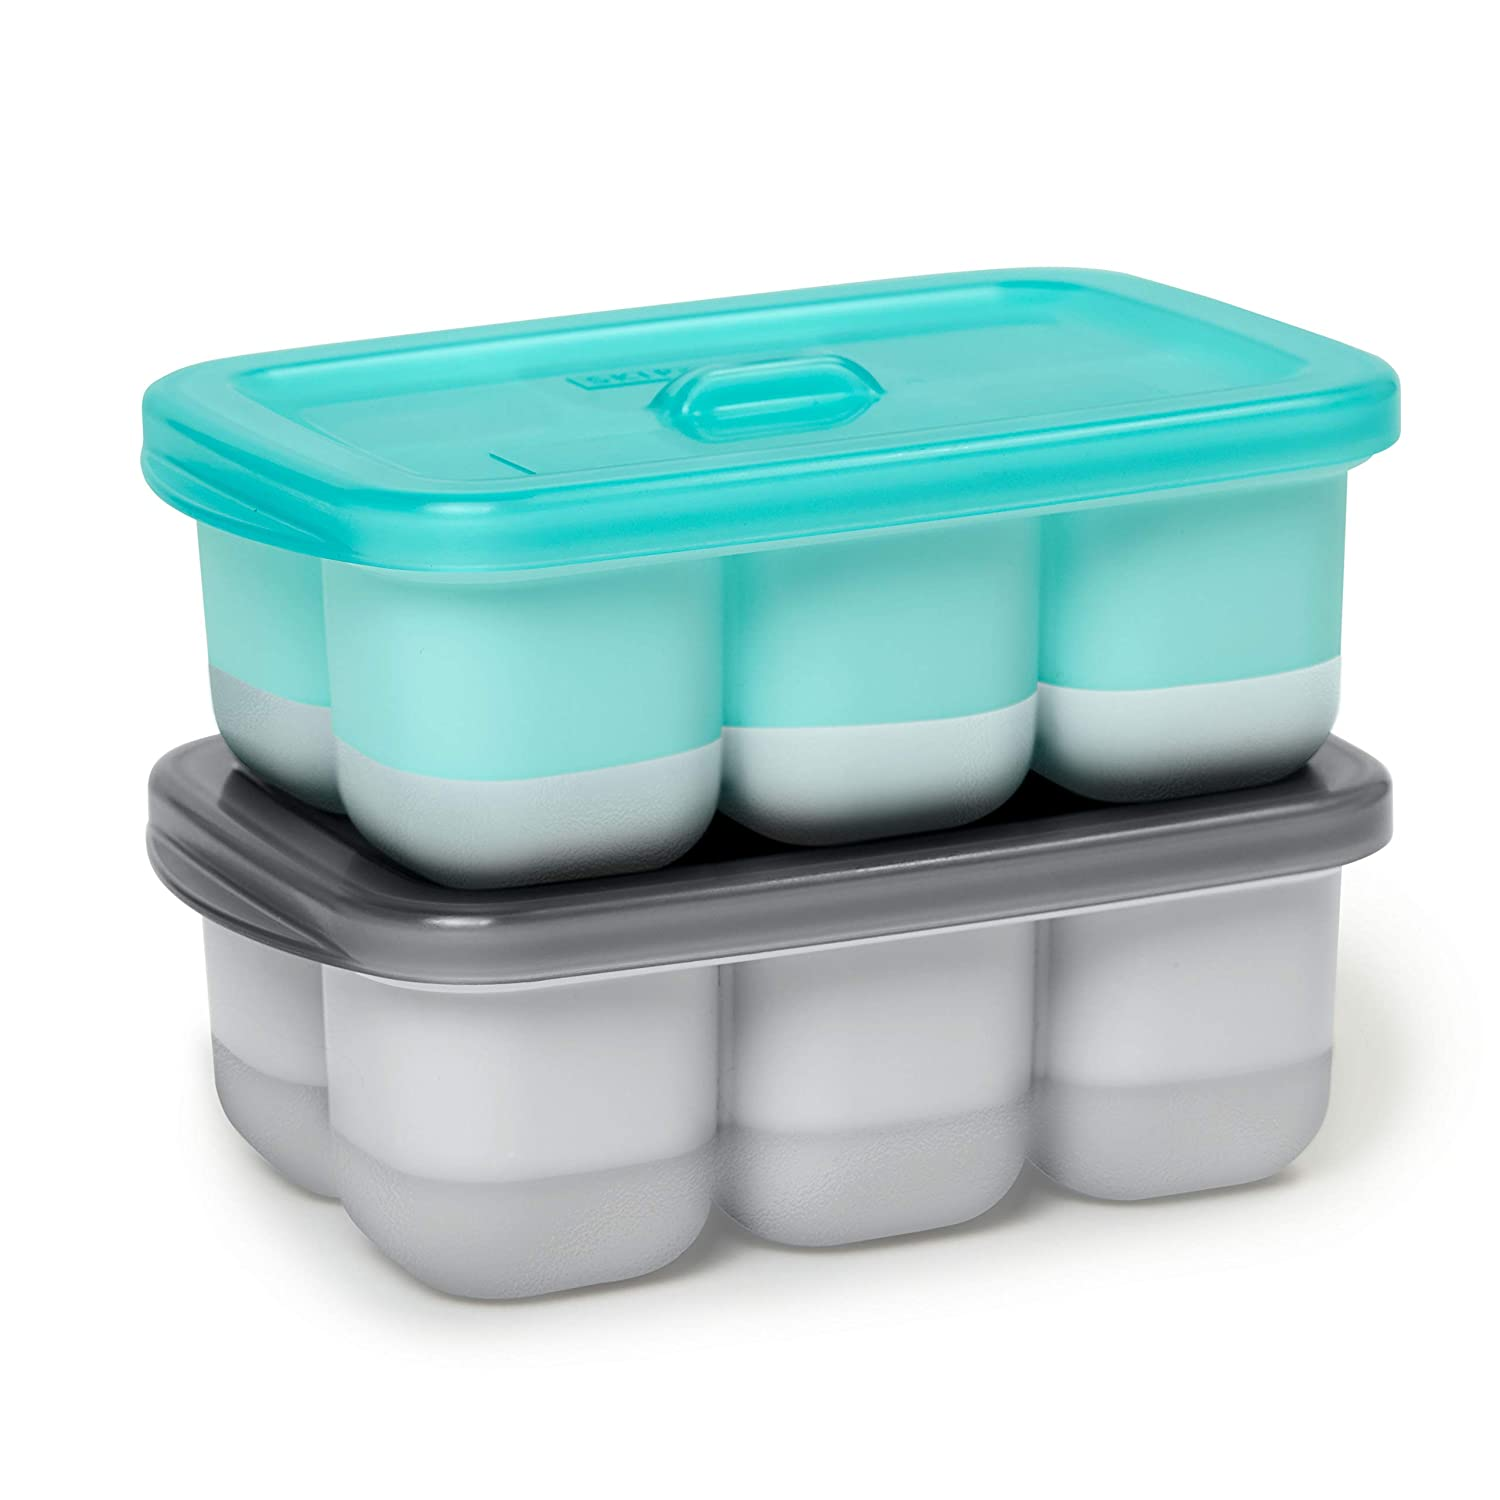 Skip Hop Baby Fresh Feeding: Easy-Fill Freezer Trays, 2 Pieces, Grey/Teal